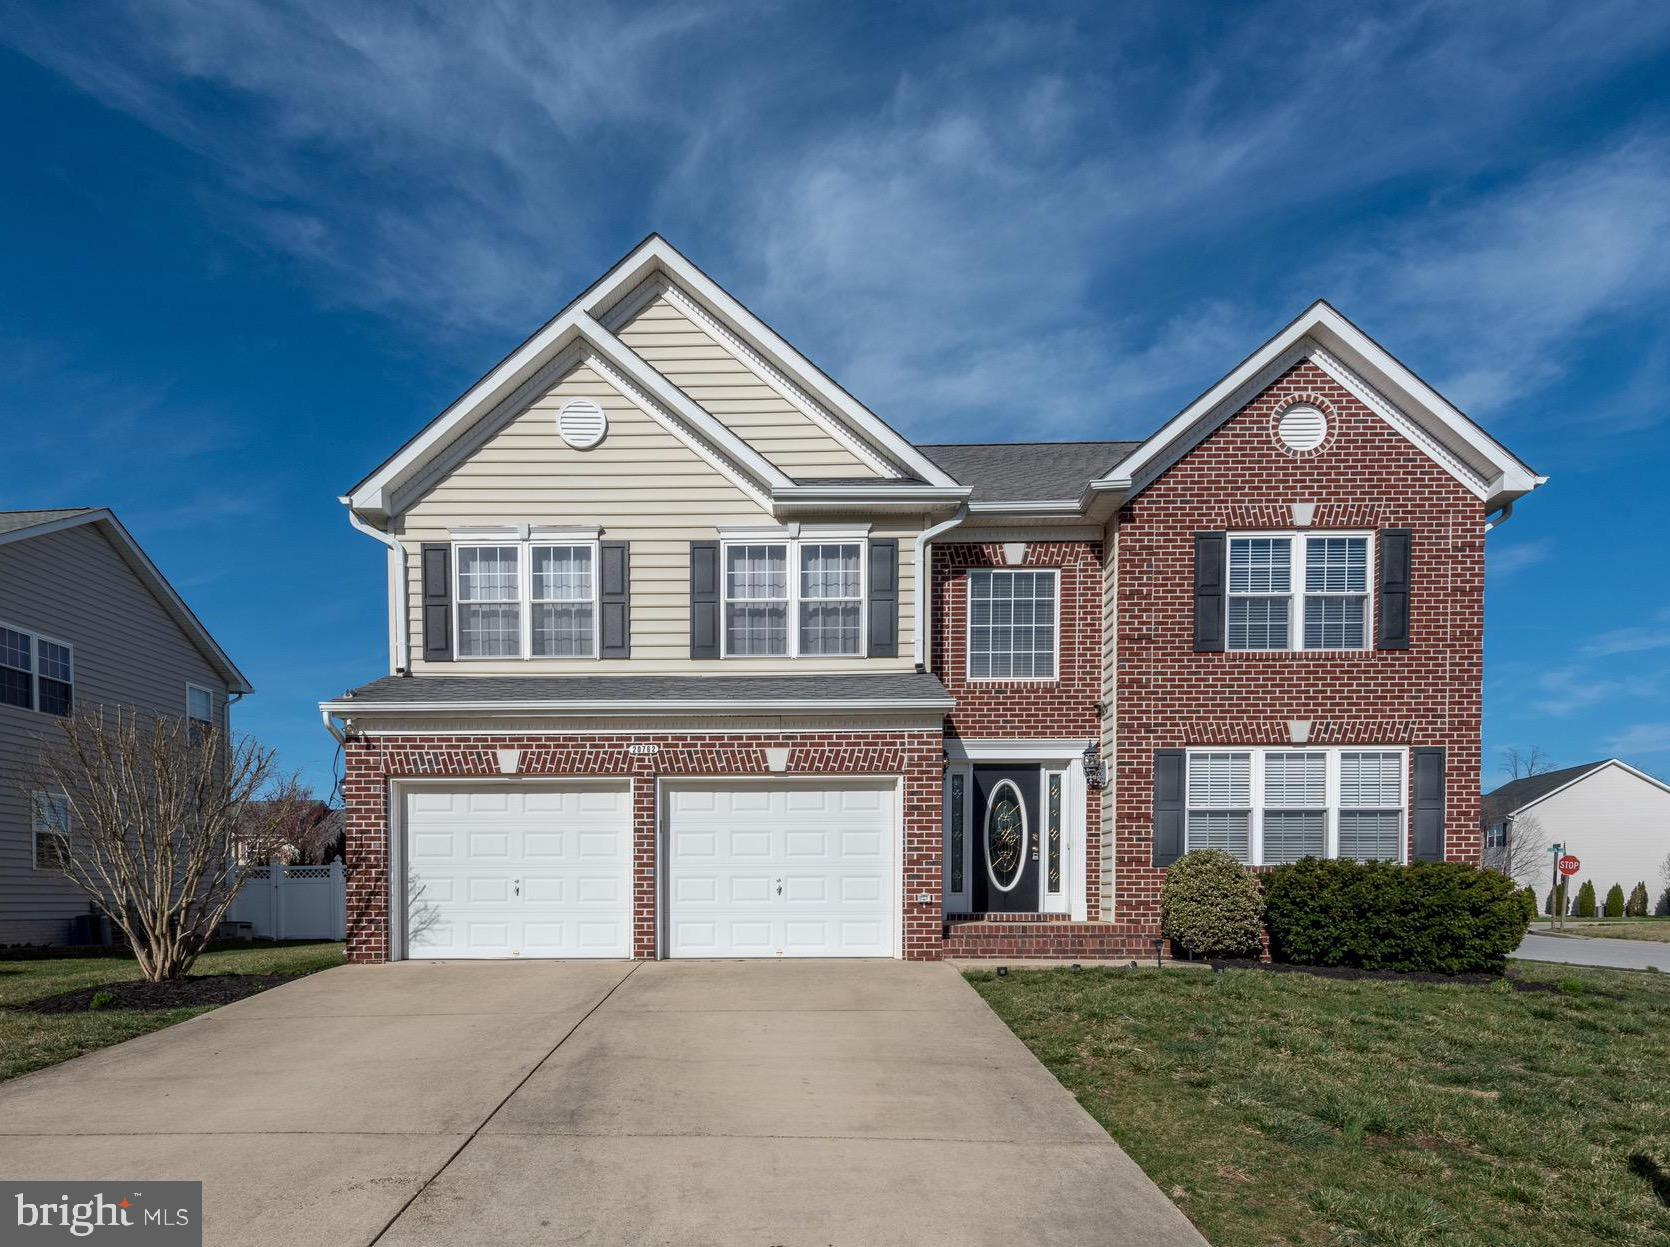 20762 HAMPSHIRE PLACE, LEXINGTON PARK, Maryland 20653, 5 Bedrooms Bedrooms, ,4 BathroomsBathrooms,Single Family,For Sale,20762 HAMPSHIRE PLACE,MDSM175196